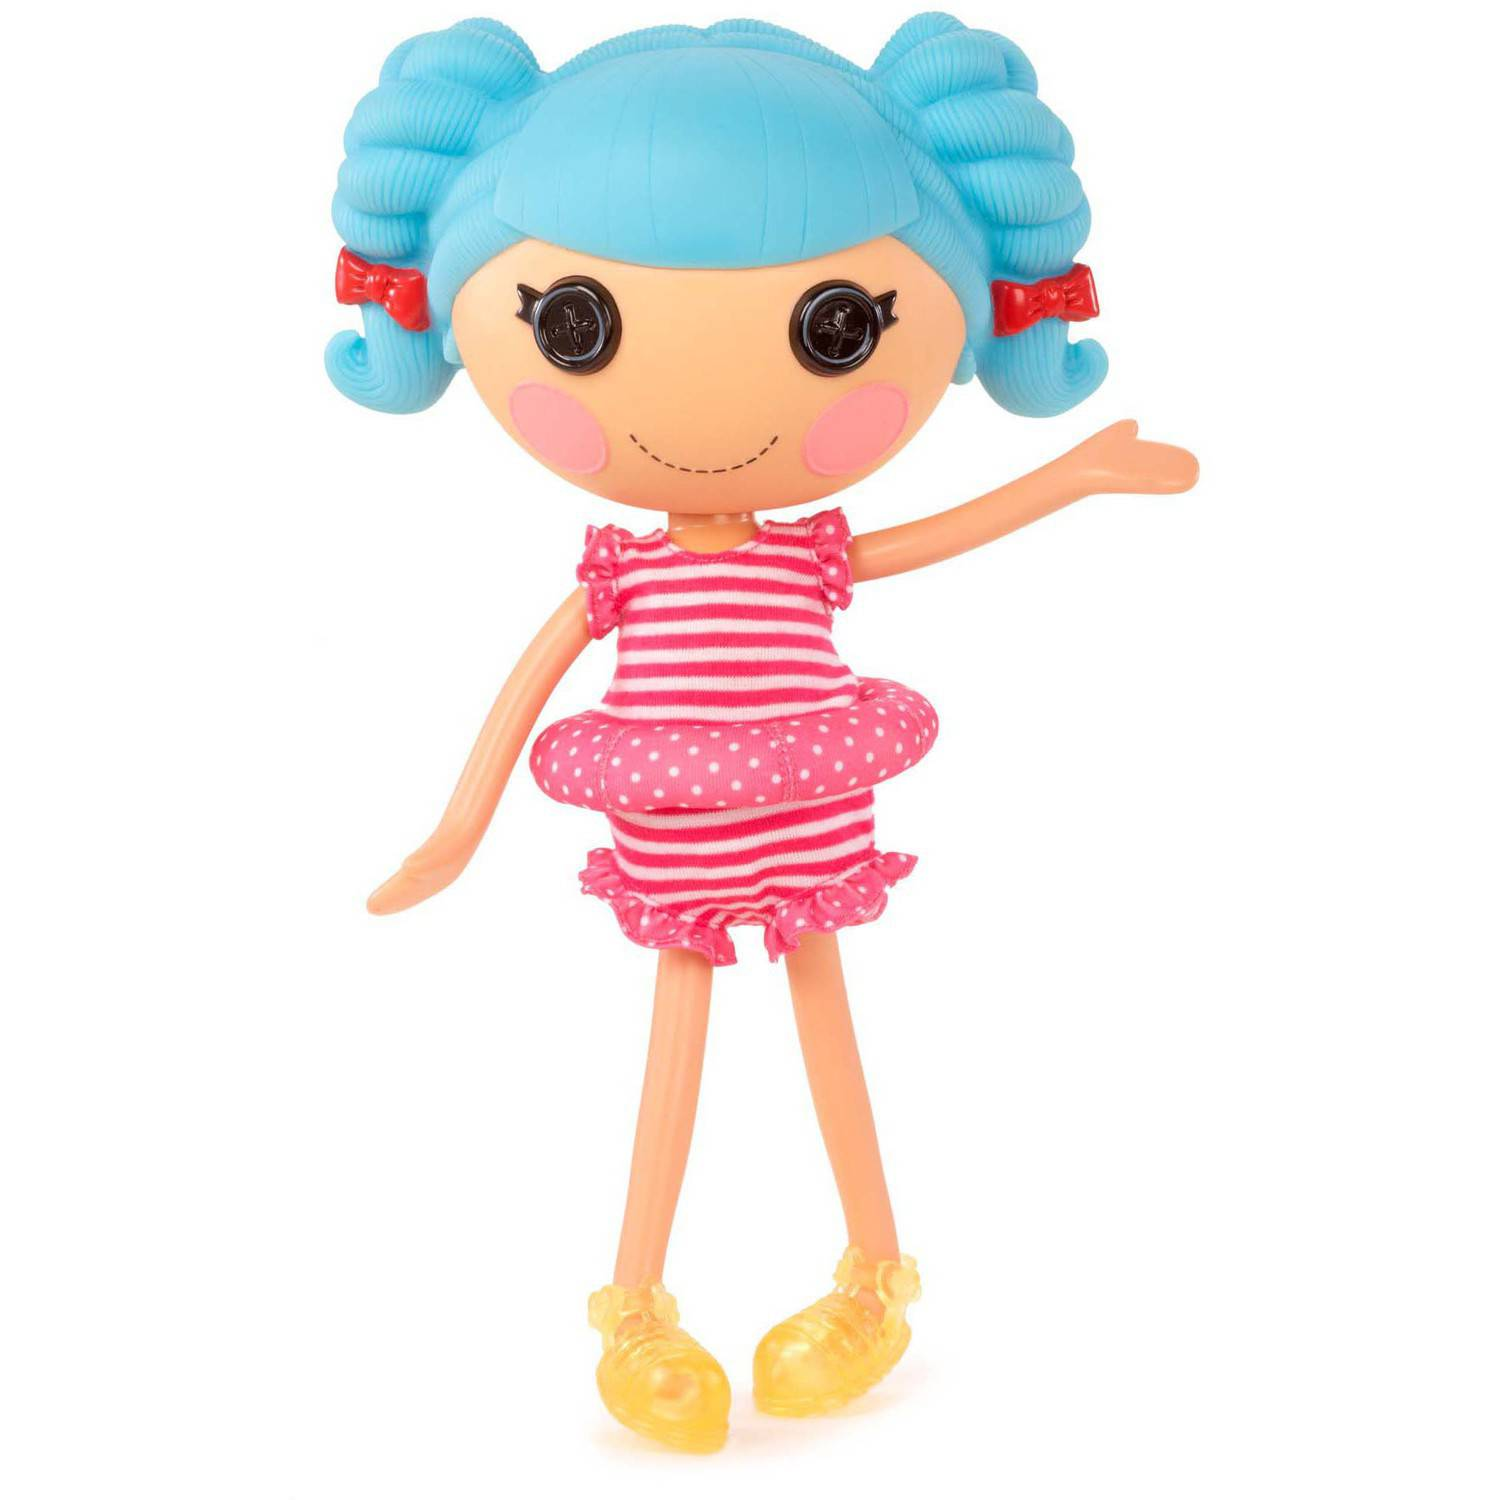 Lalaloopsy Bundle Reputation First Dolls Dolls, Clothing & Accessories